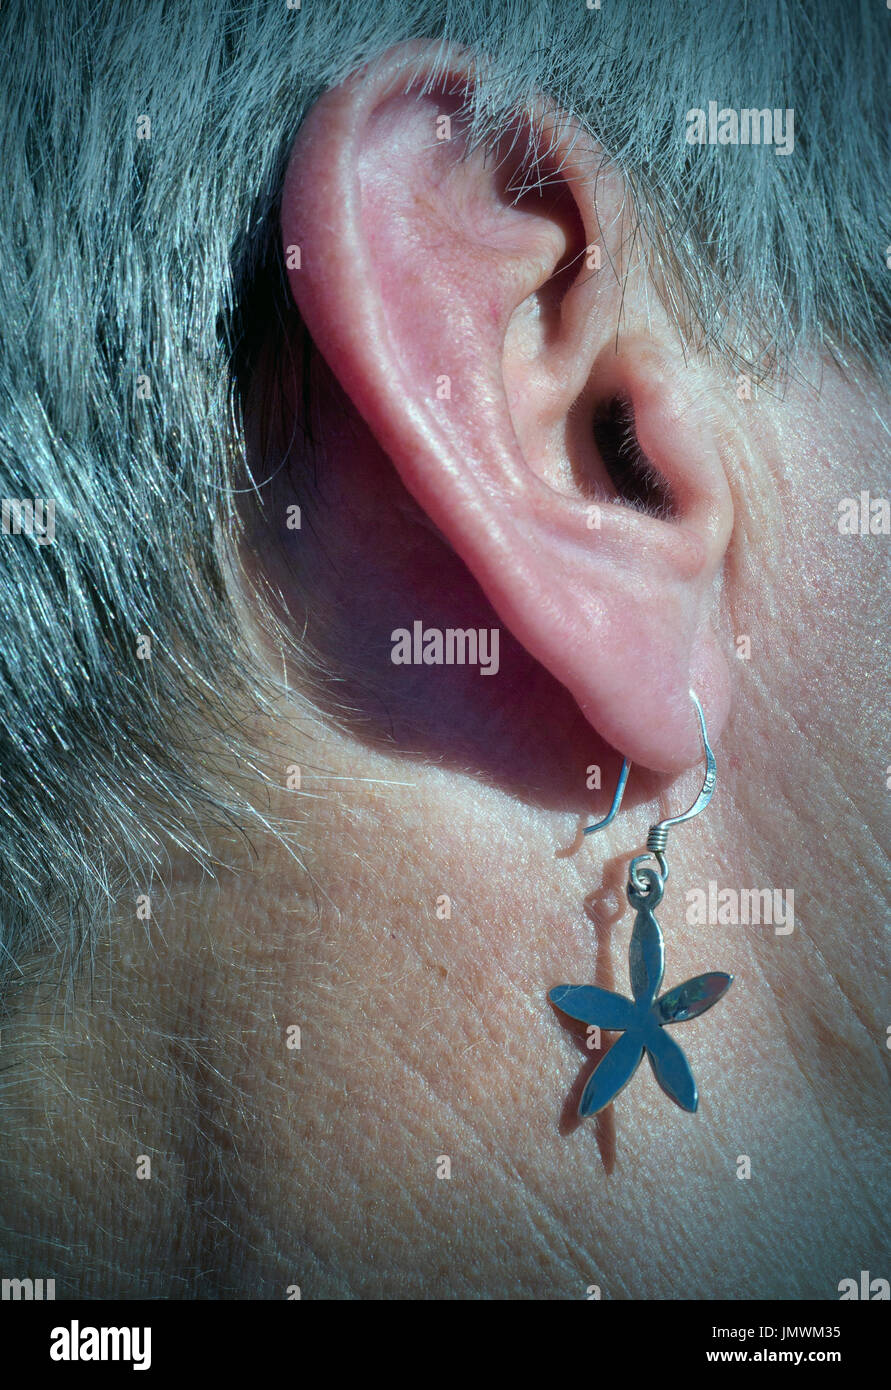 womens ear with ear ring - Stock Image